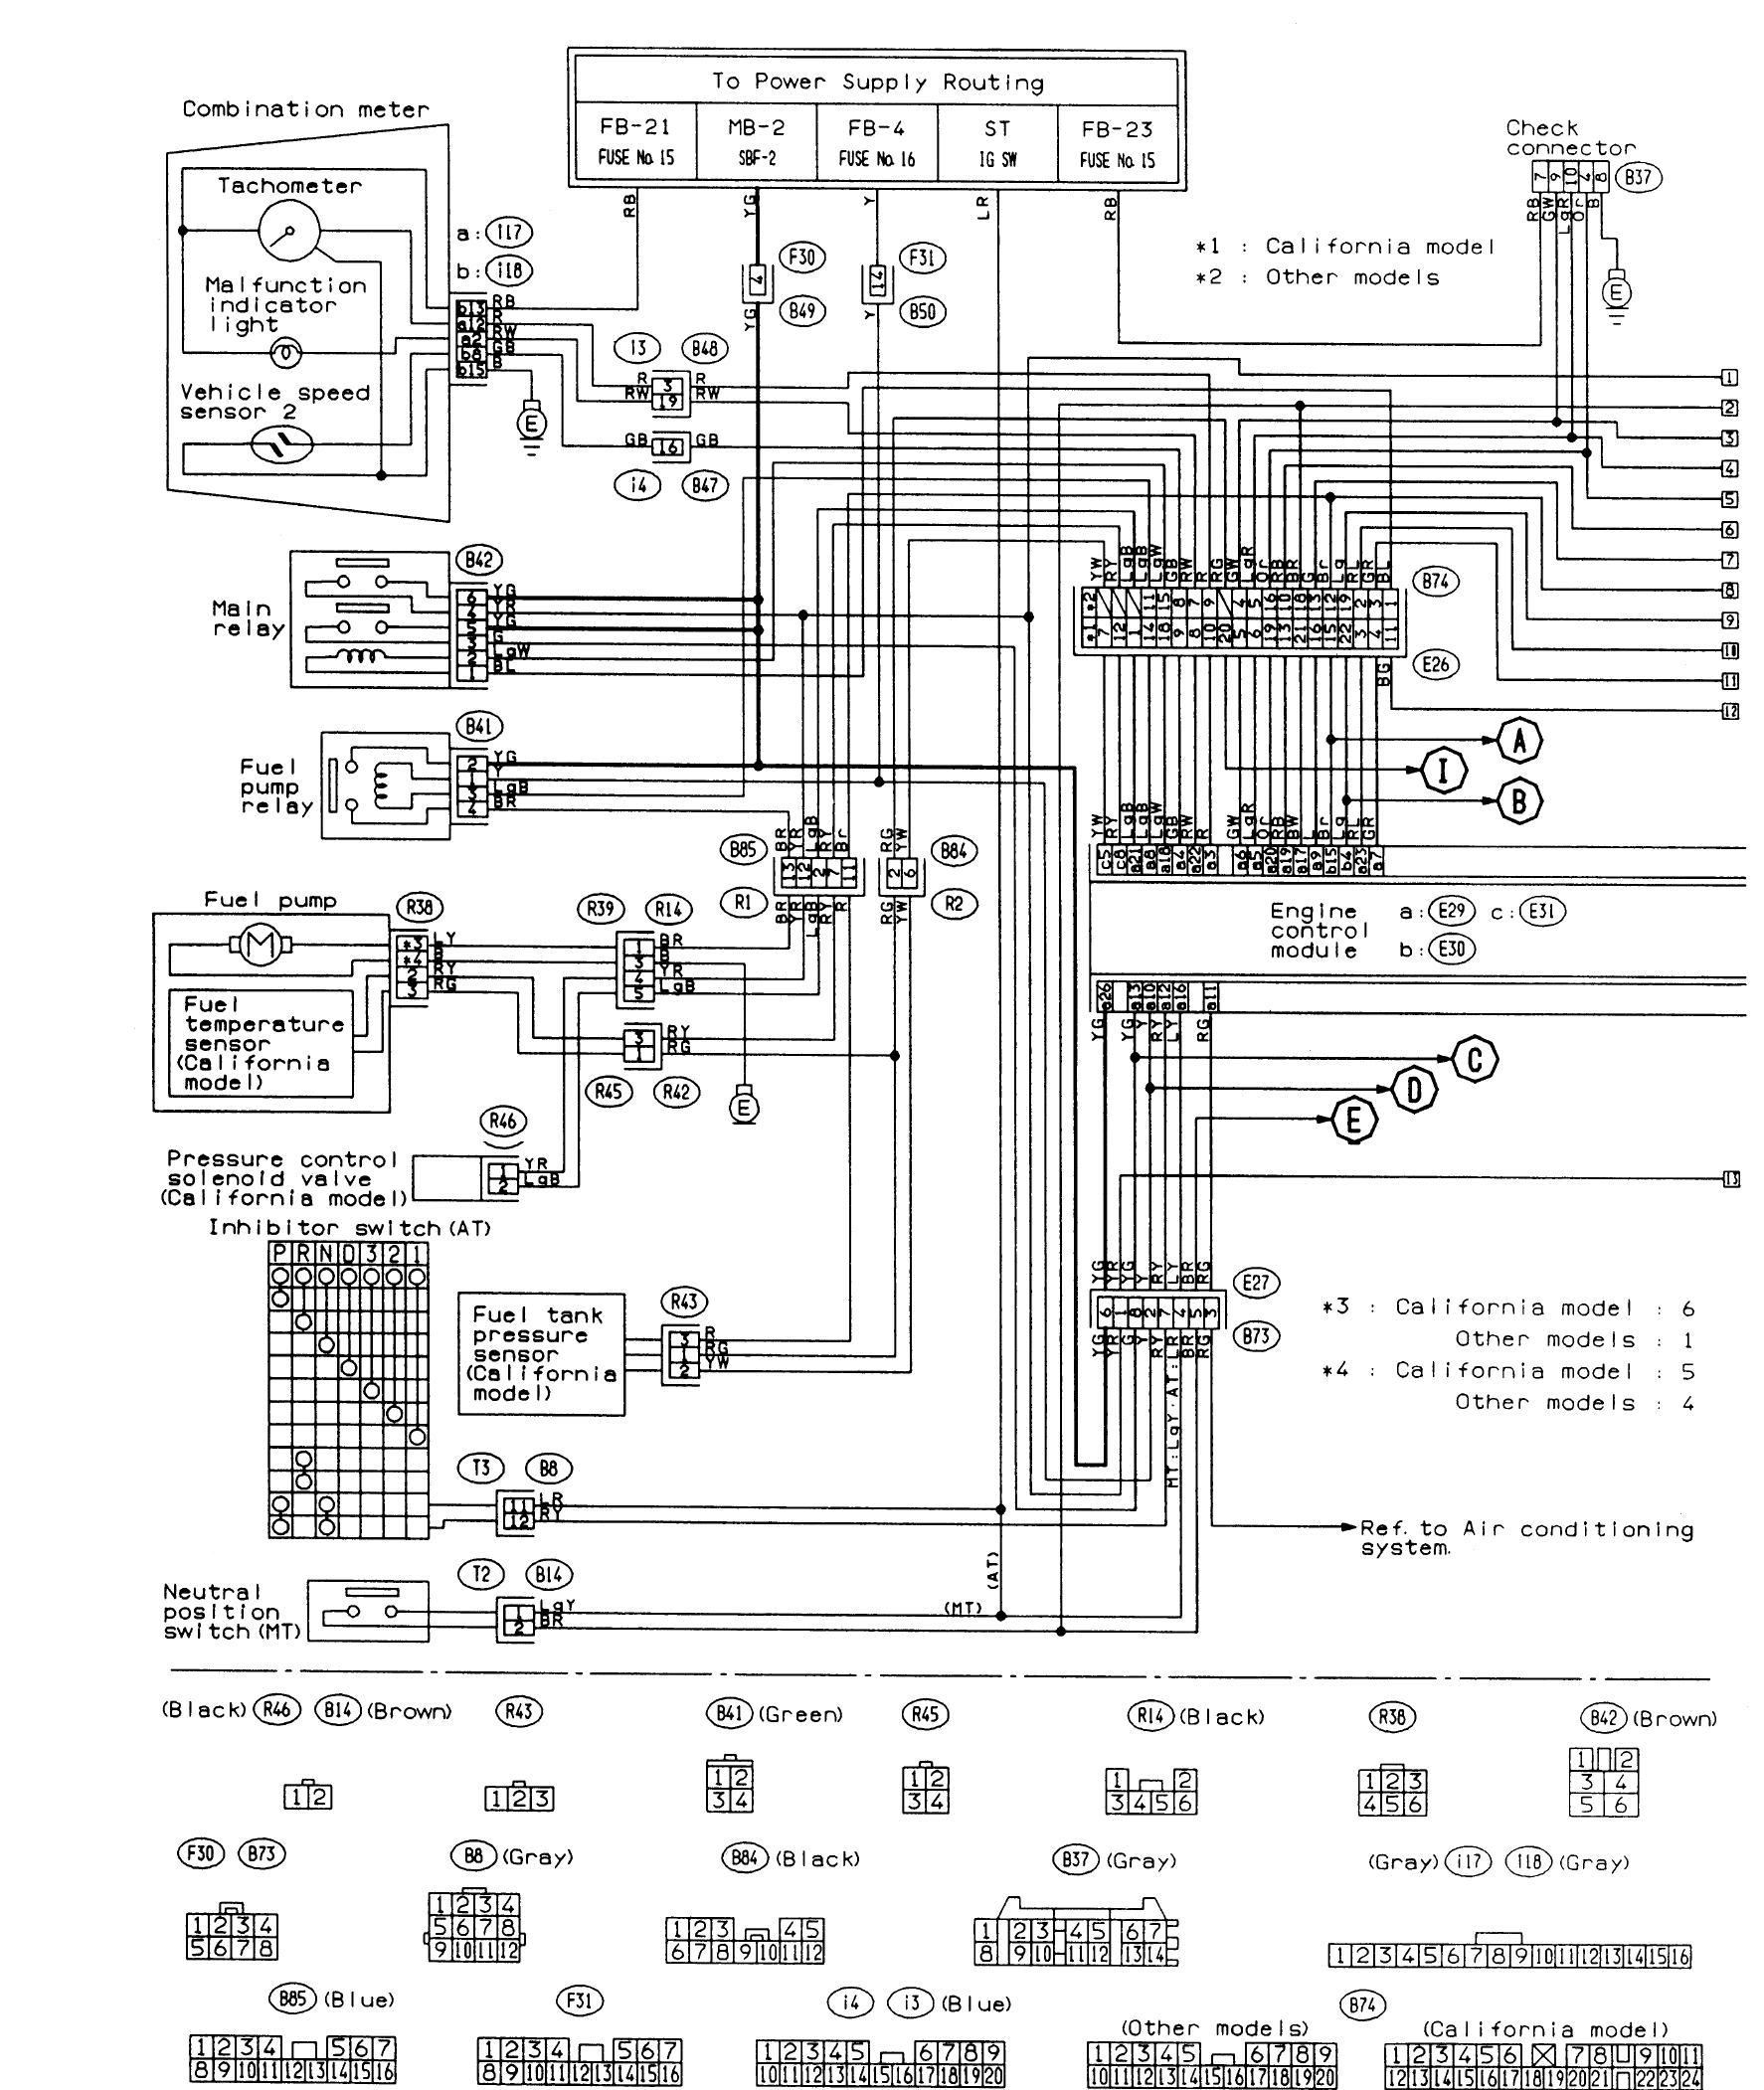 subaru ecu wiring diagram FUSlrCX subaru fiori wiring diagram subaru wiring diagrams instruction 2008 subaru tribeca ac wiring diagram at eliteediting.co